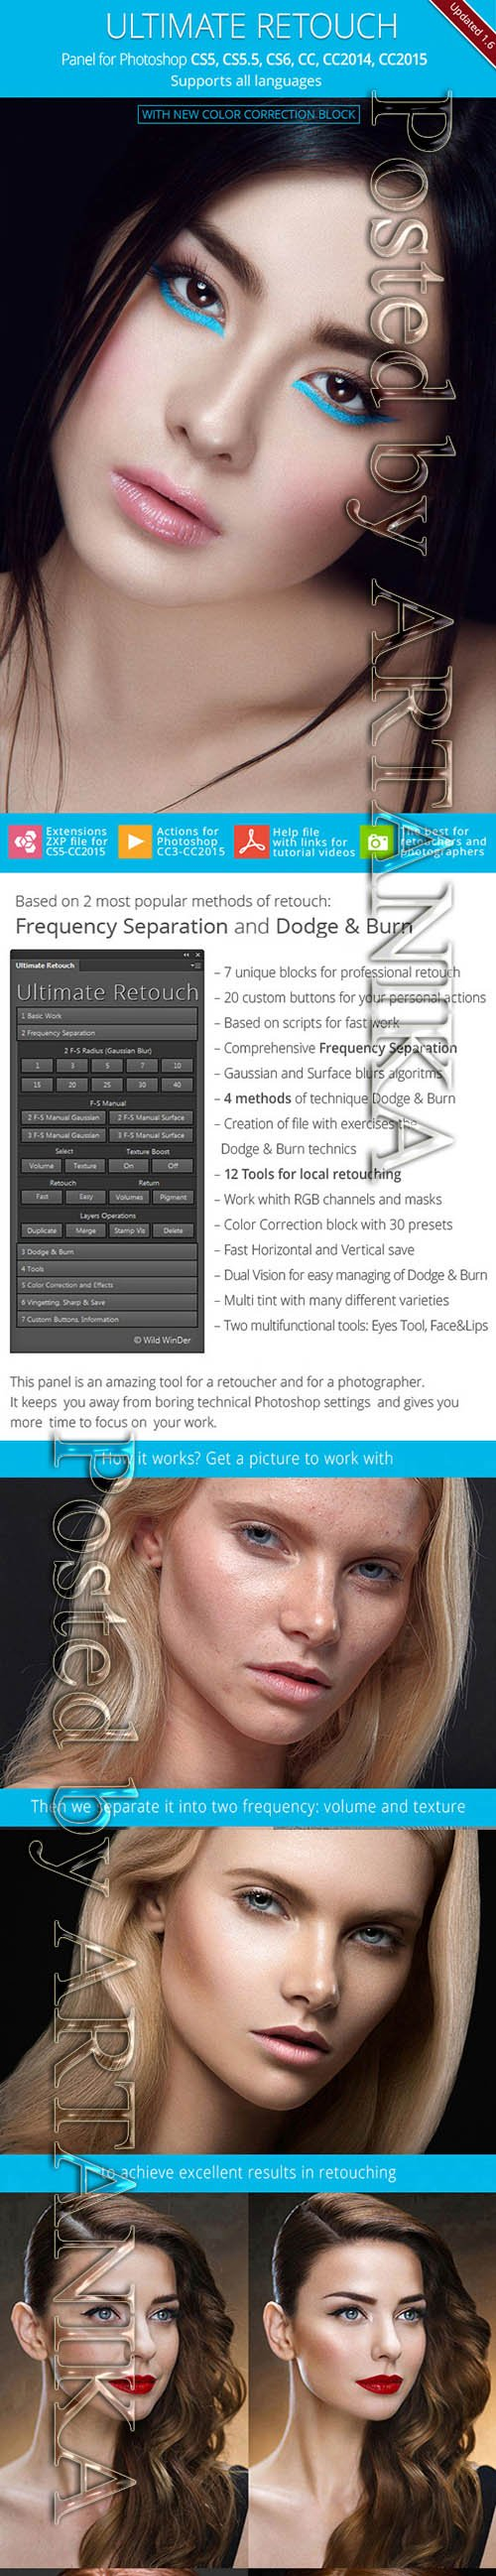 Ultimate Retouch - Panel and Actions 10864575